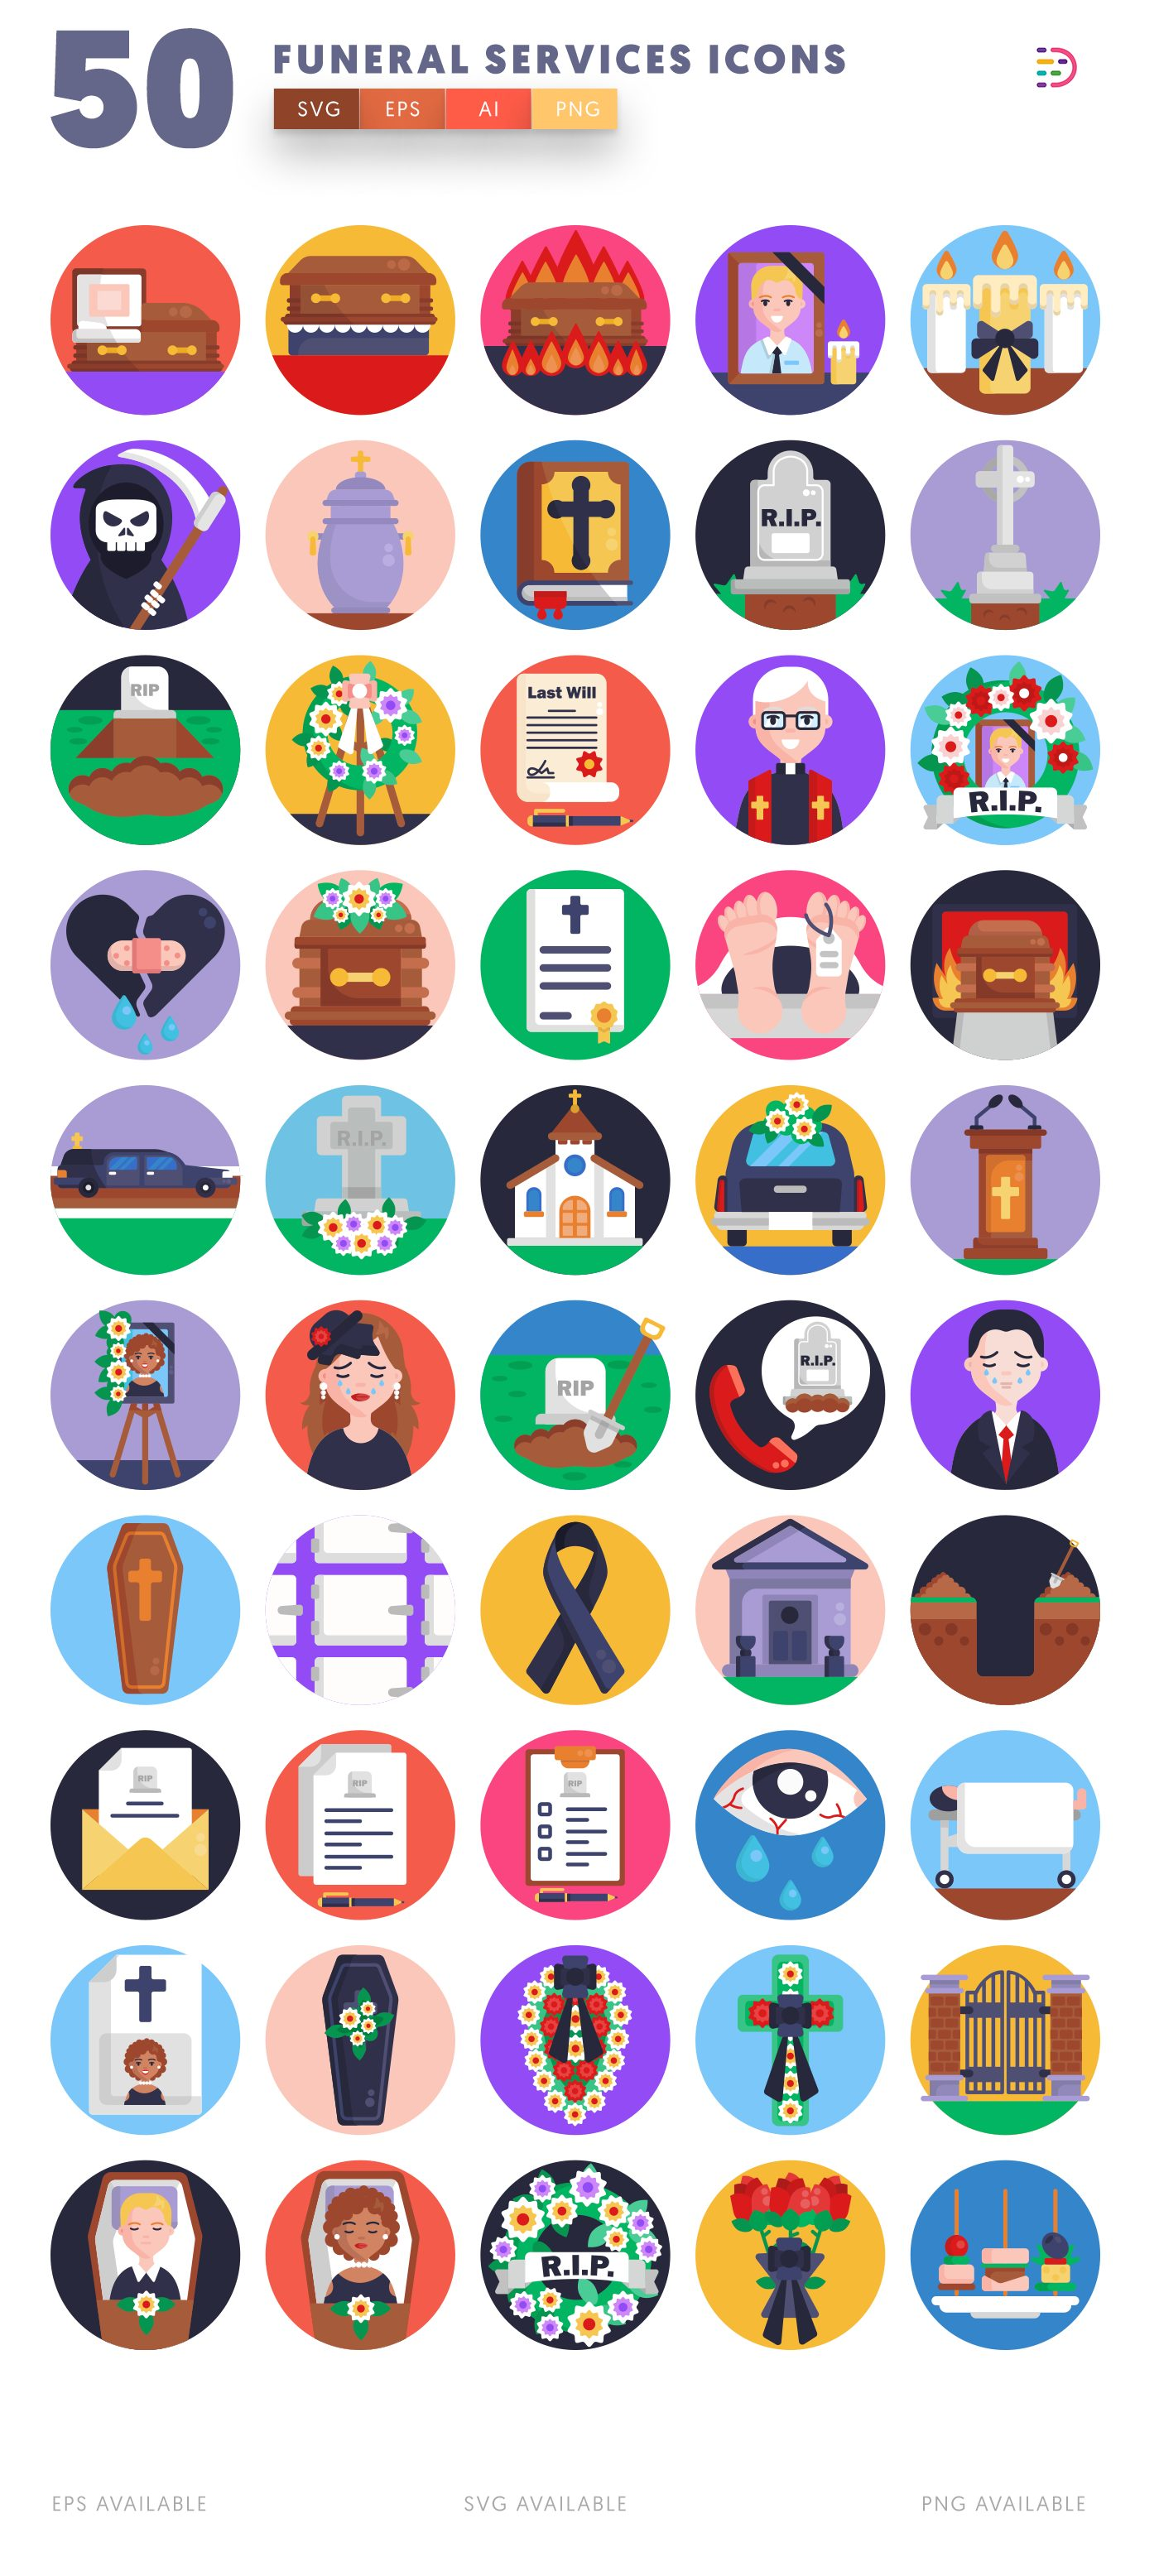 Funeral Services icon pack